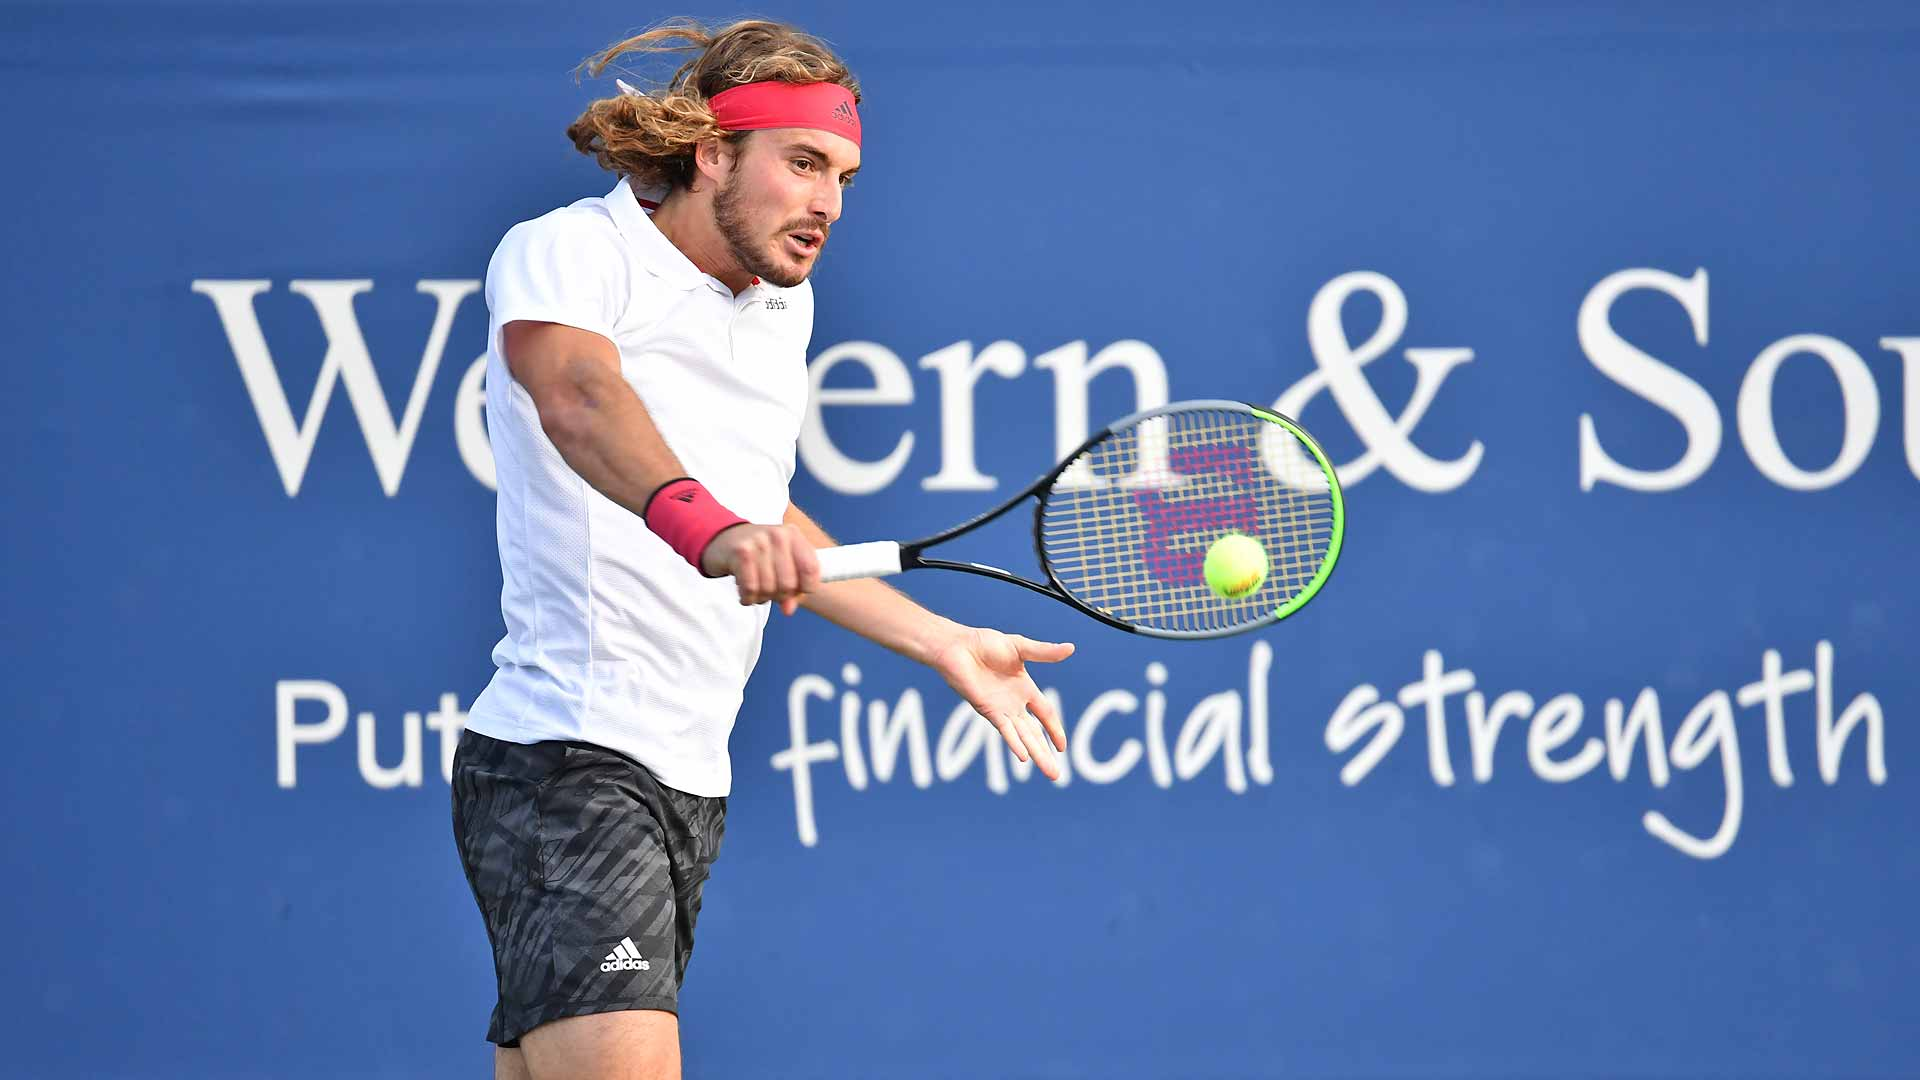 Stefanos Tsitsipas Looks Up Up Up En Route To Western Southern Open Semi Finals Theunionjournal The Union Journal